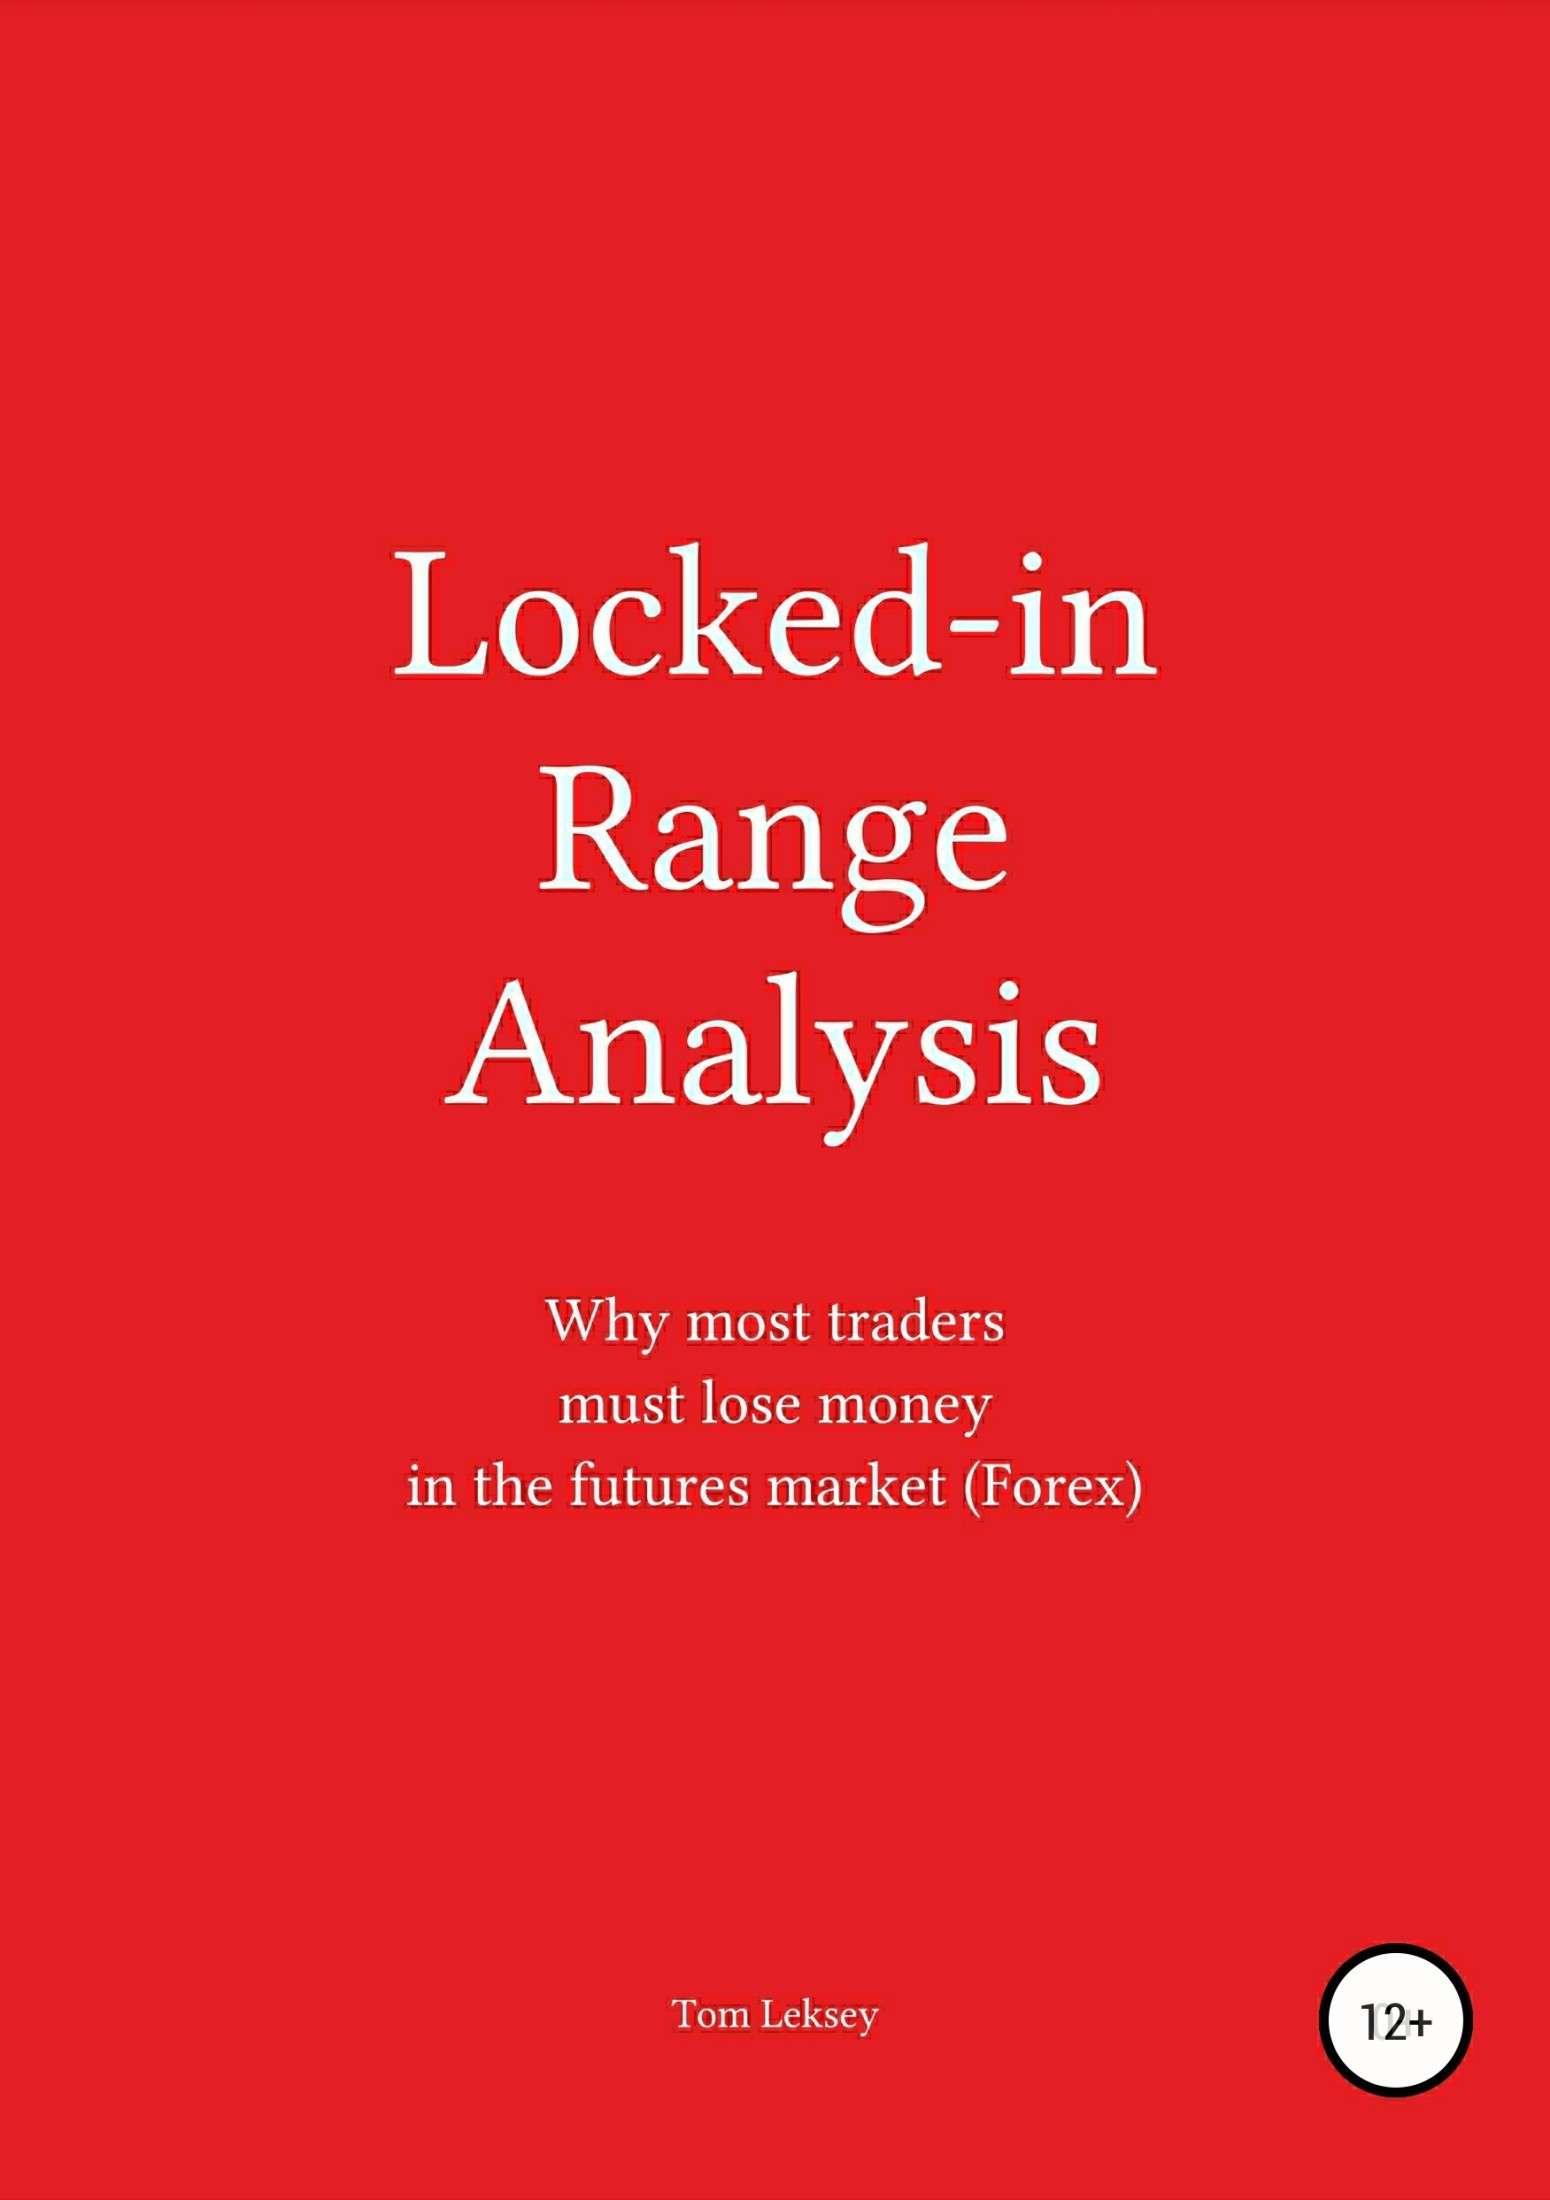 Обложка книги Locked-in Range Analysis: Why most traders must lose money in the futures market (Forex)